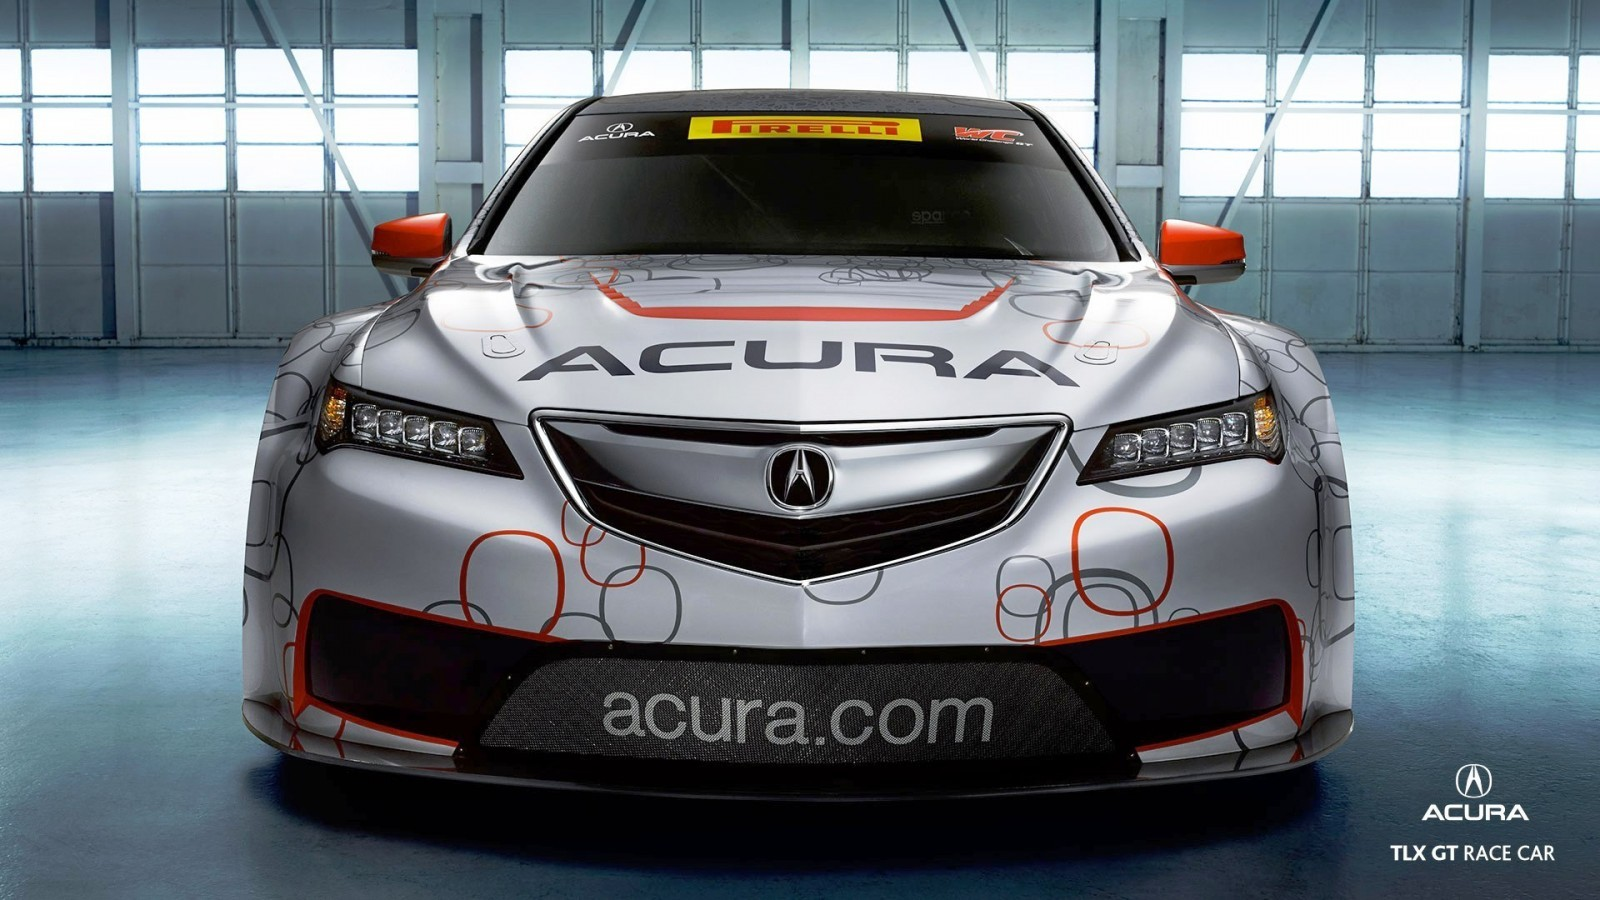 2015 Acura TLX GT Racecar Boosts Off 2015 TLX Lanuch with 500Hp Twin-Turbo SH-AWD 9